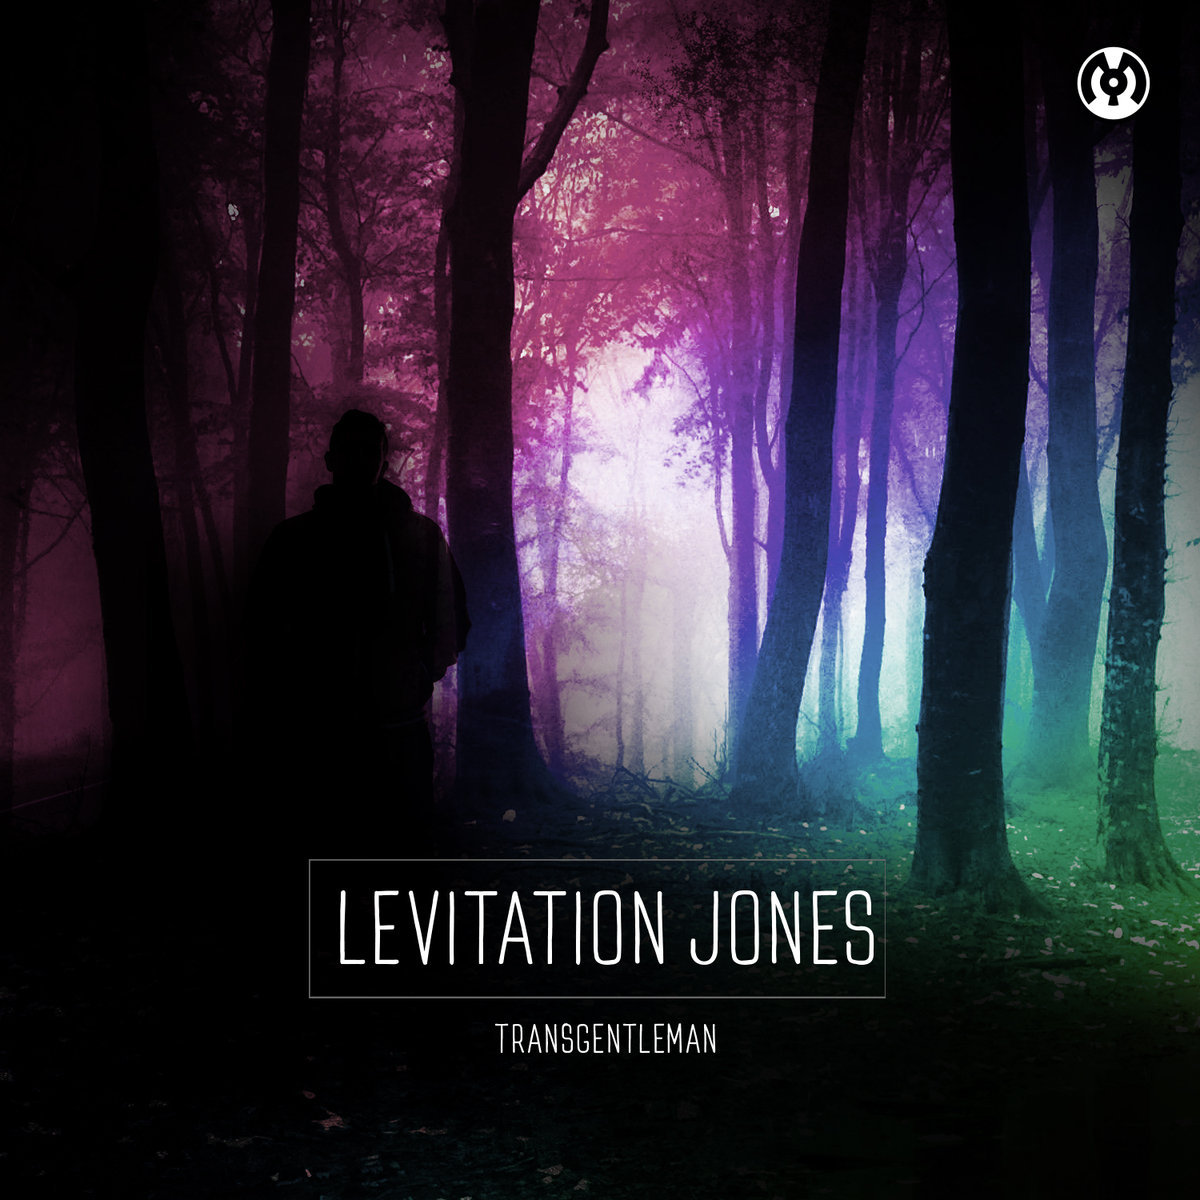 Levitation Jones - Transgentleman